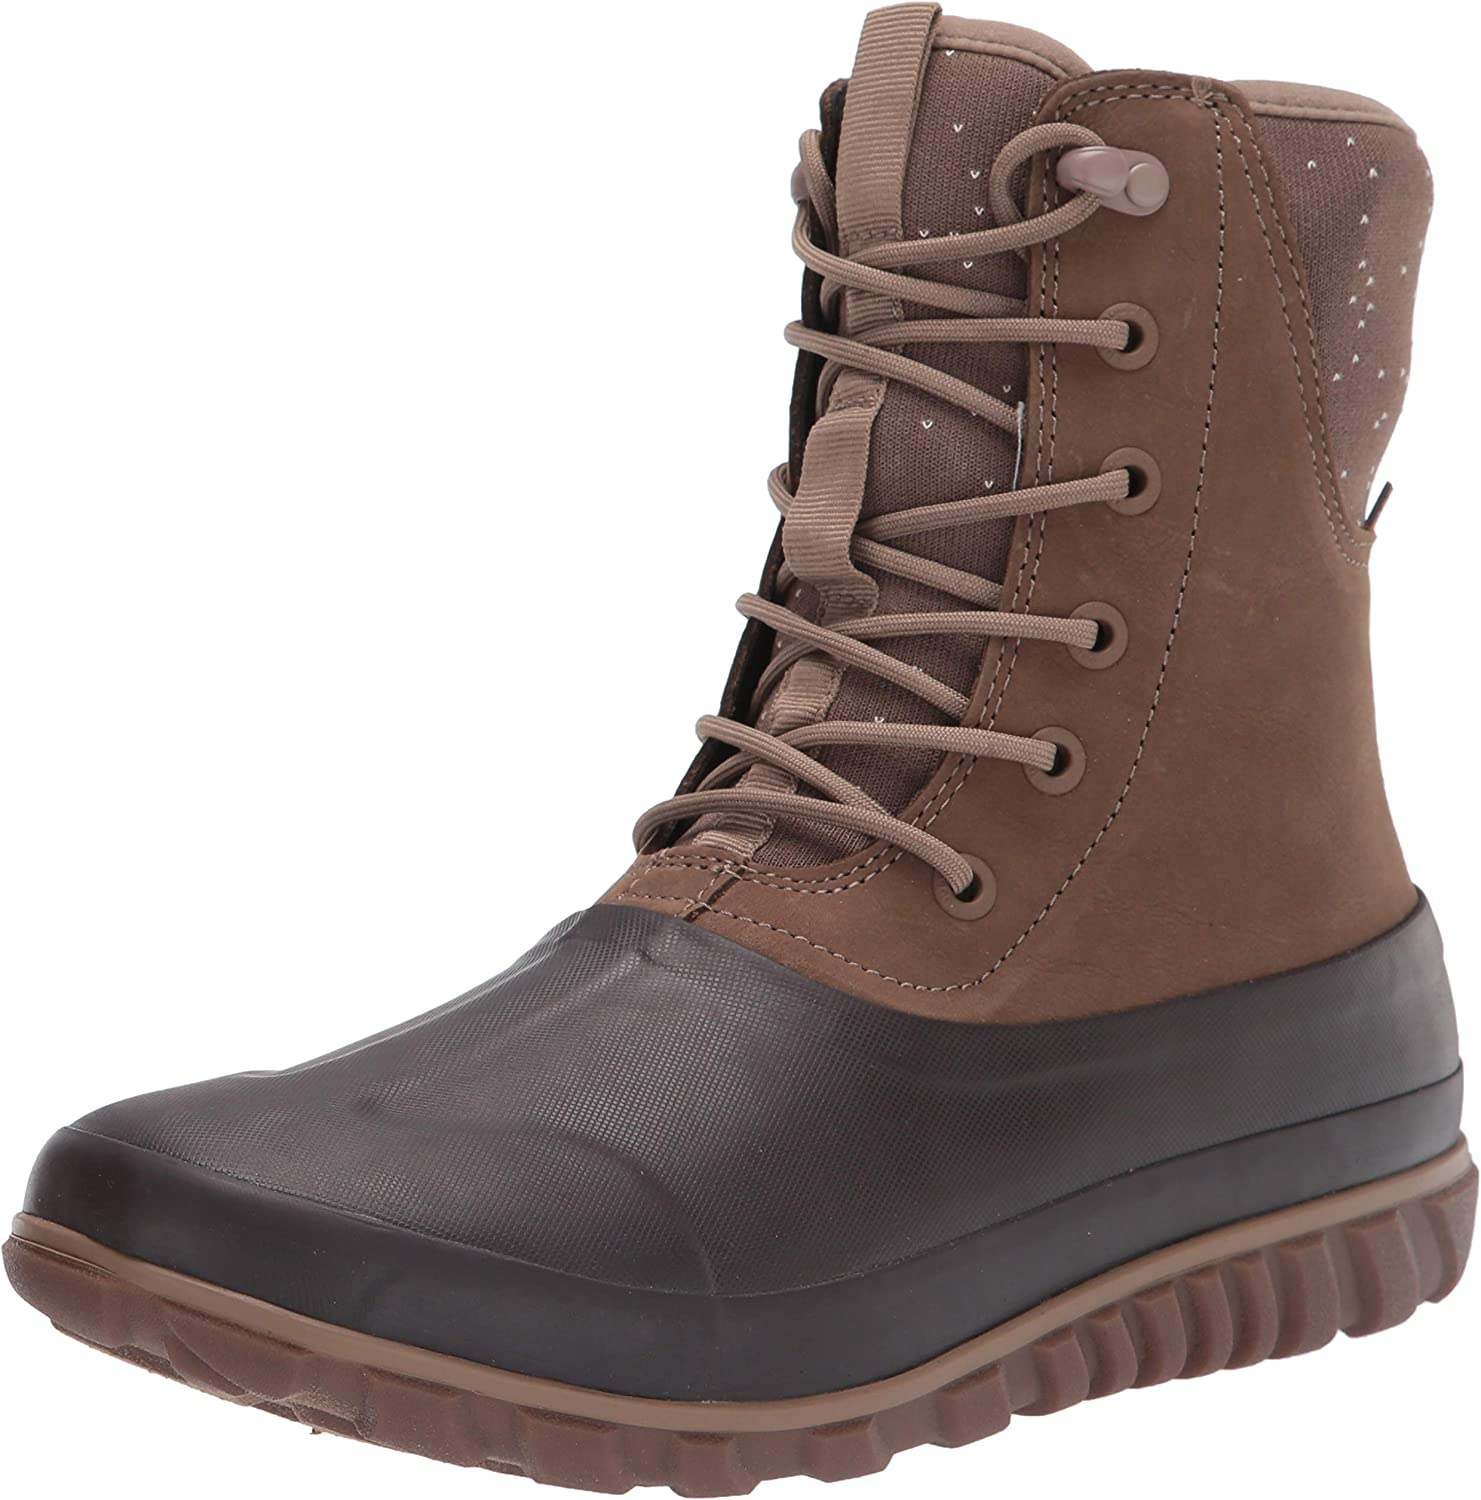 BOGS Women's Classic Casual Lace Leather Snow Boot